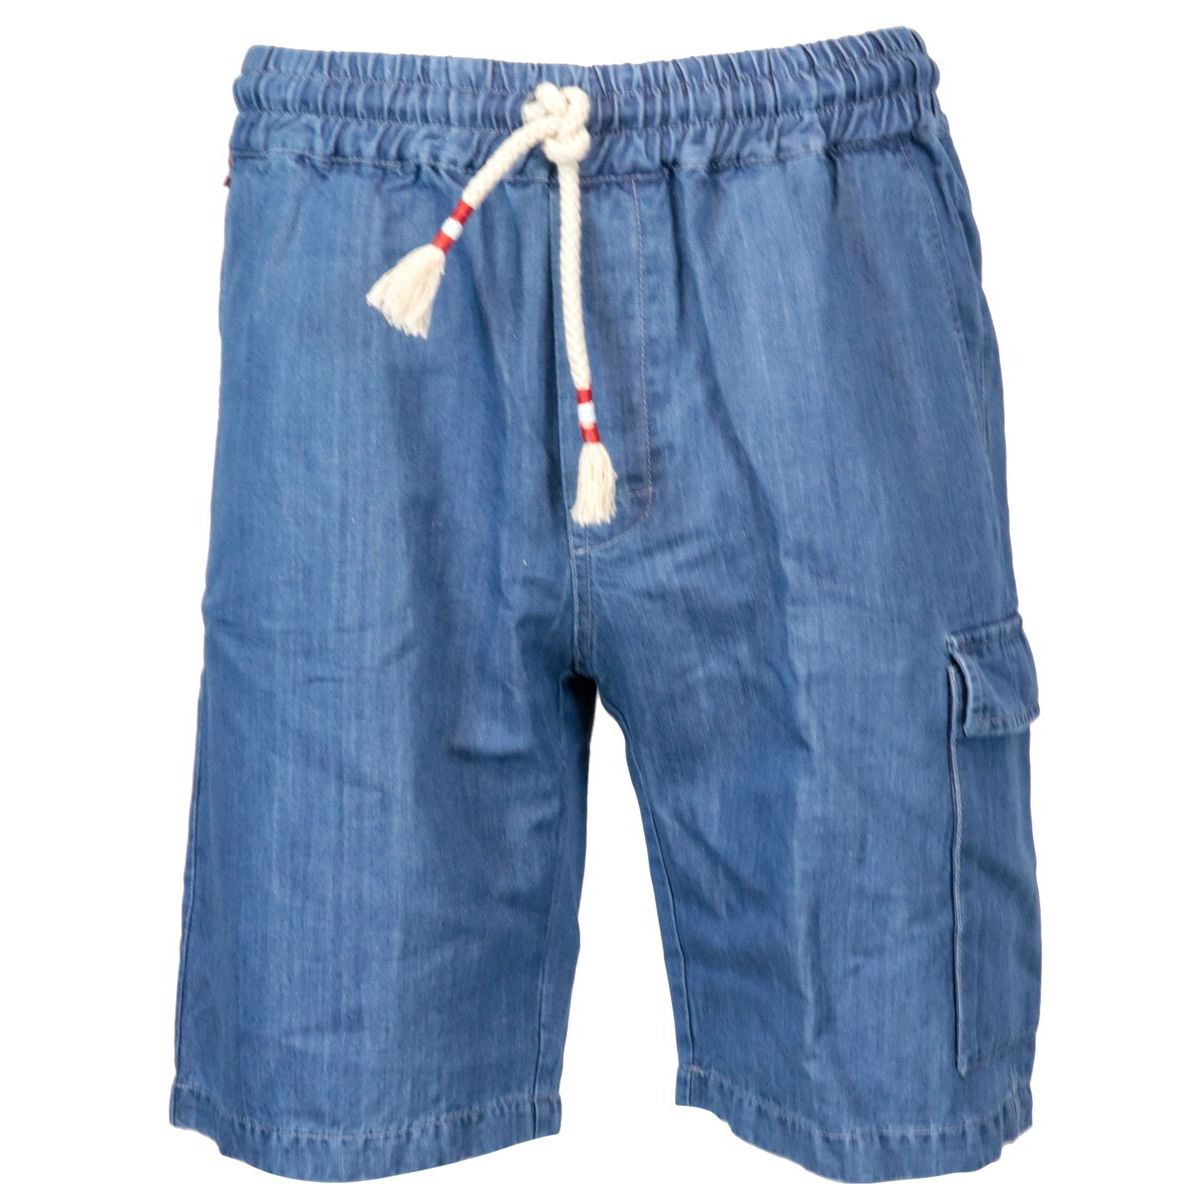 Denim-effect linen blend bermuda. Denim MC2 Saint Barth